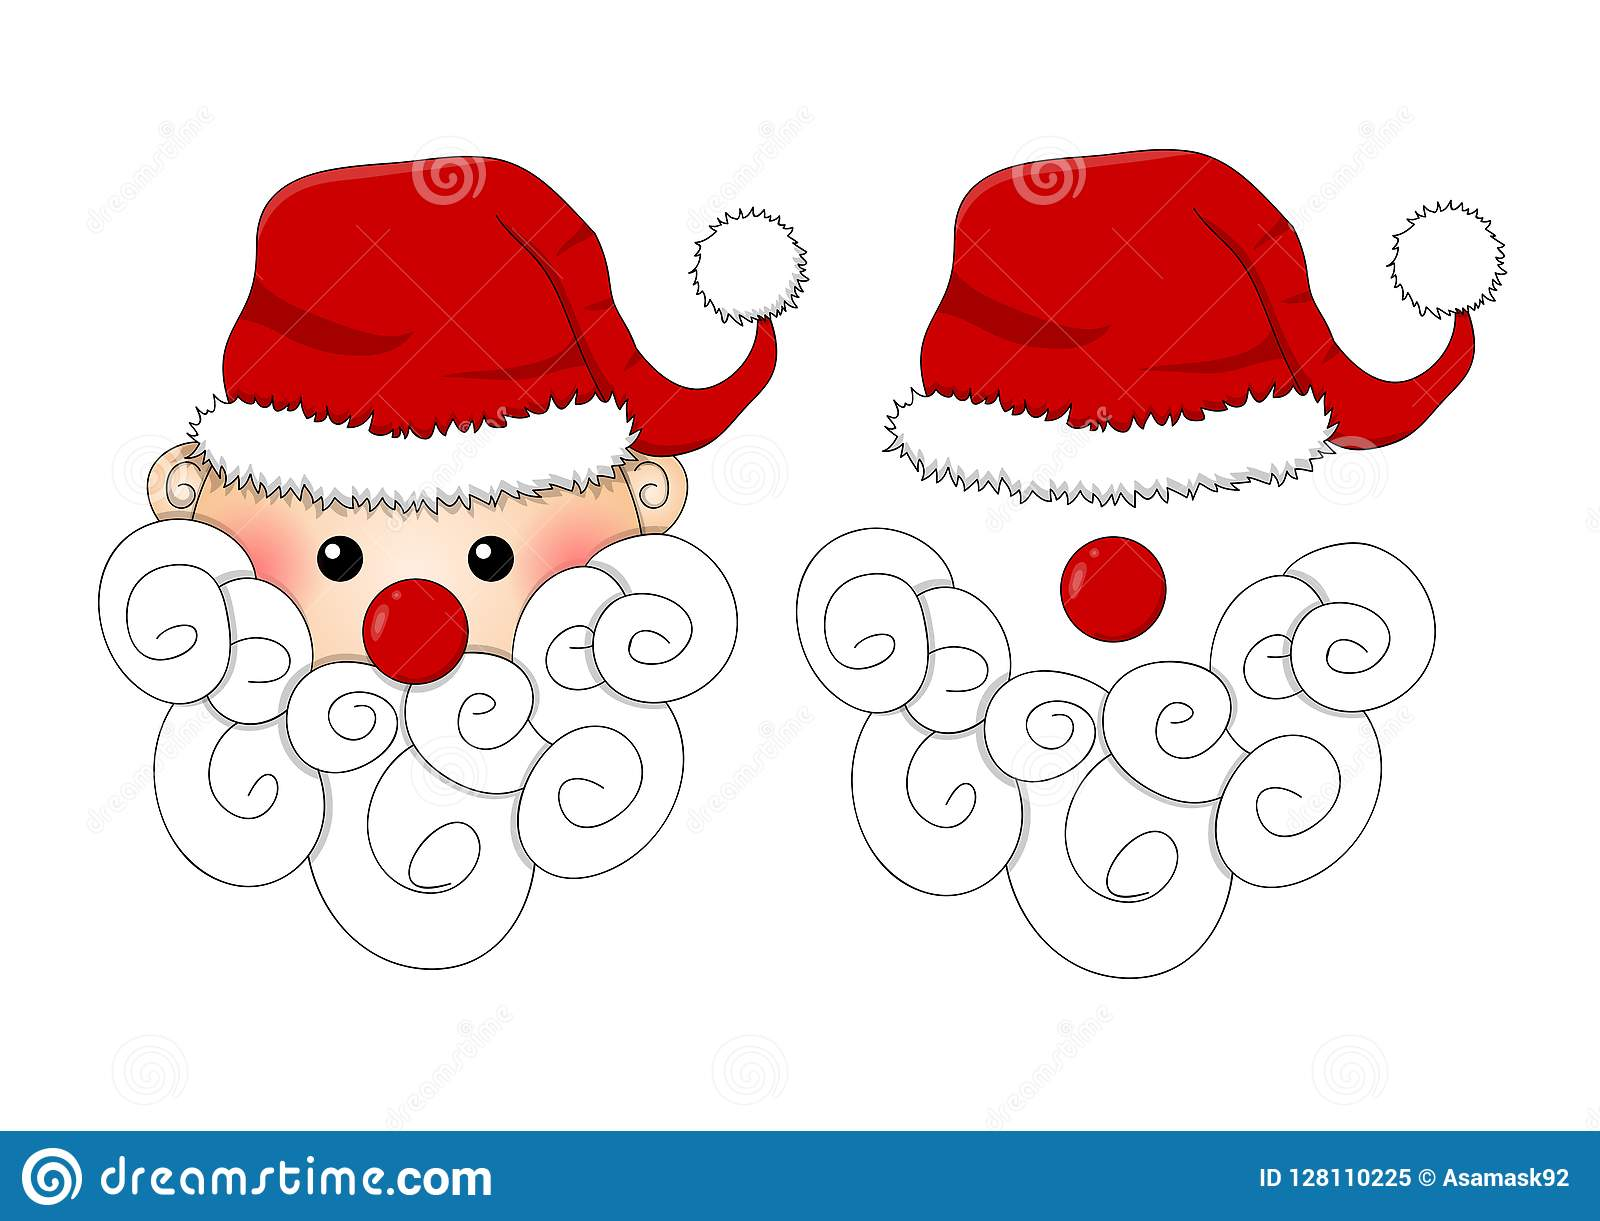 Santa Claus, Santa Hat, Red Nose and White Beard isolated on White Background. Vector Illustration